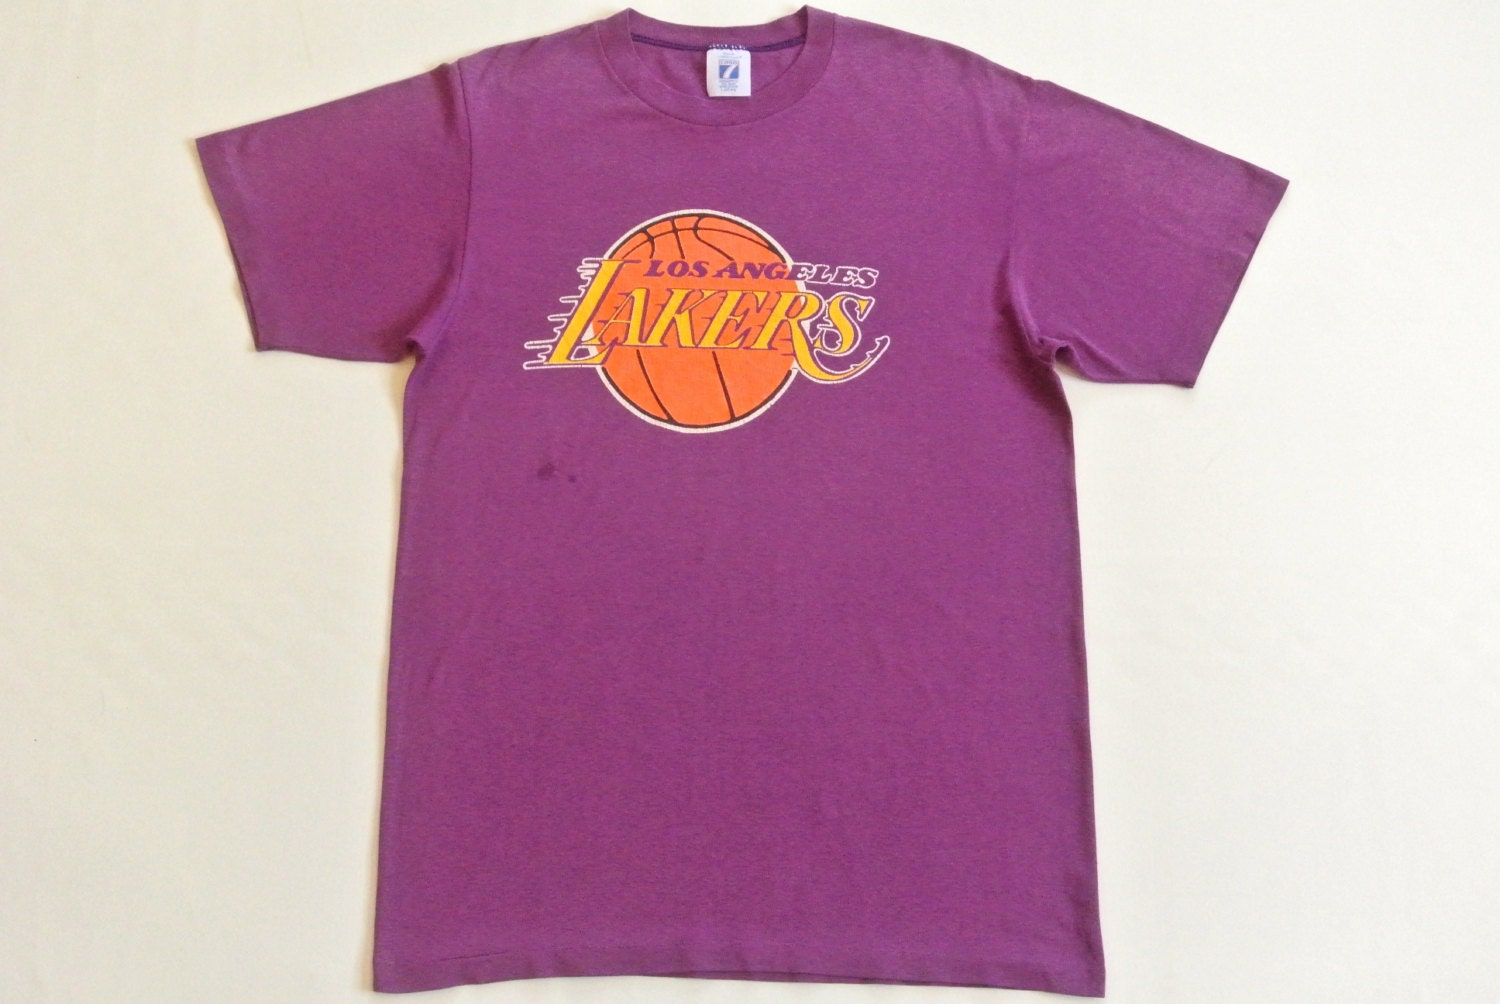 Vintage Lakers Tshirt 67